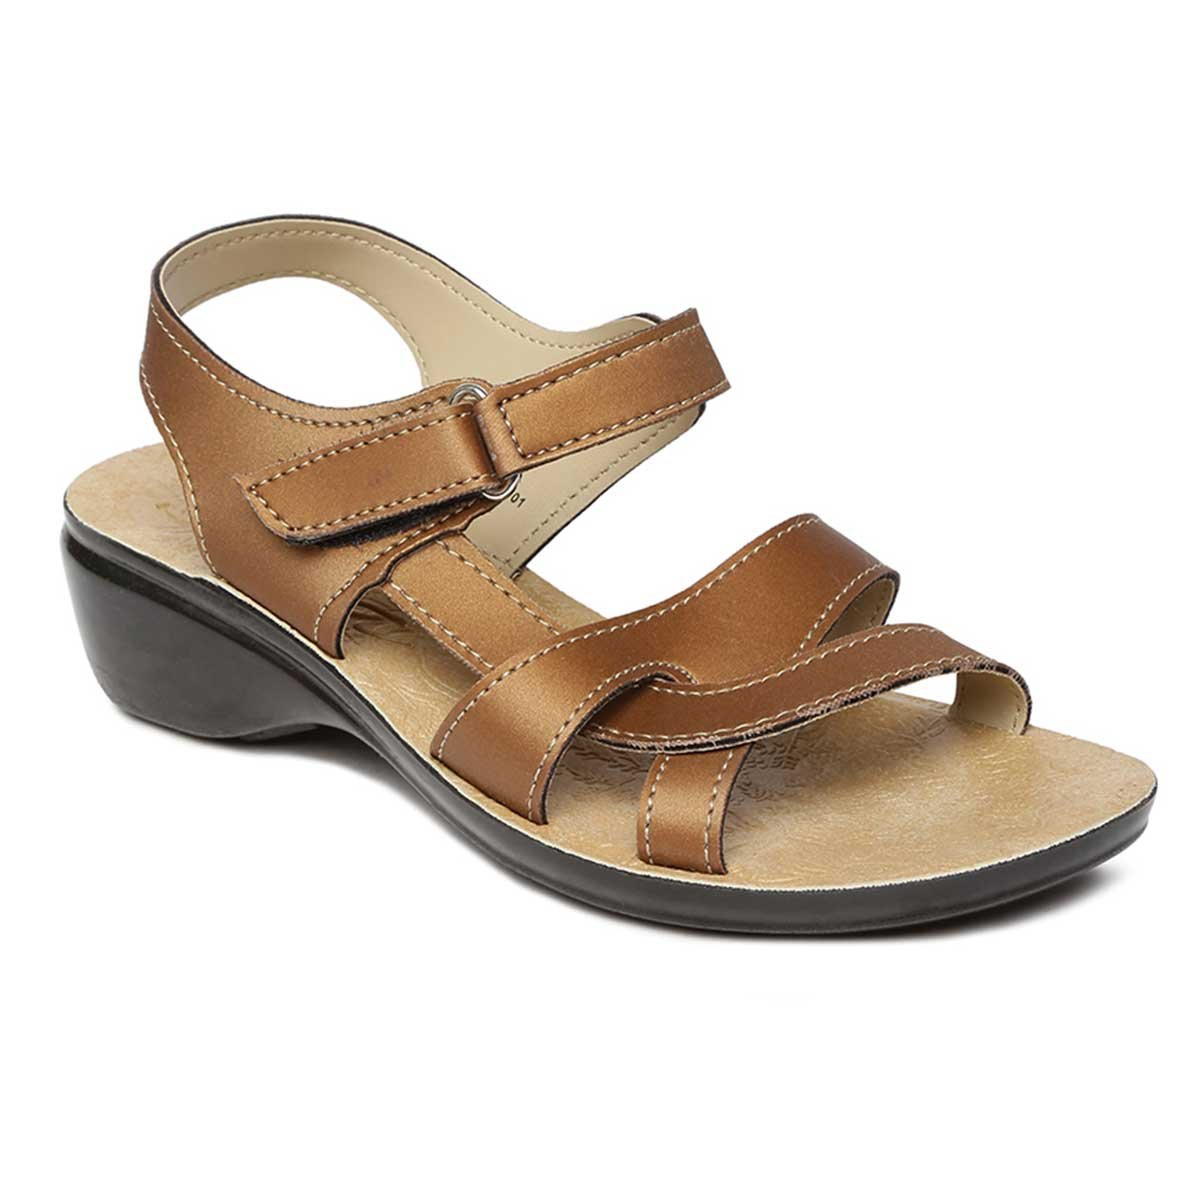 5751d2afc PARAGON SOLEA Women s Brown Sandals  Buy Online at Low Prices in India -  Amazon.in